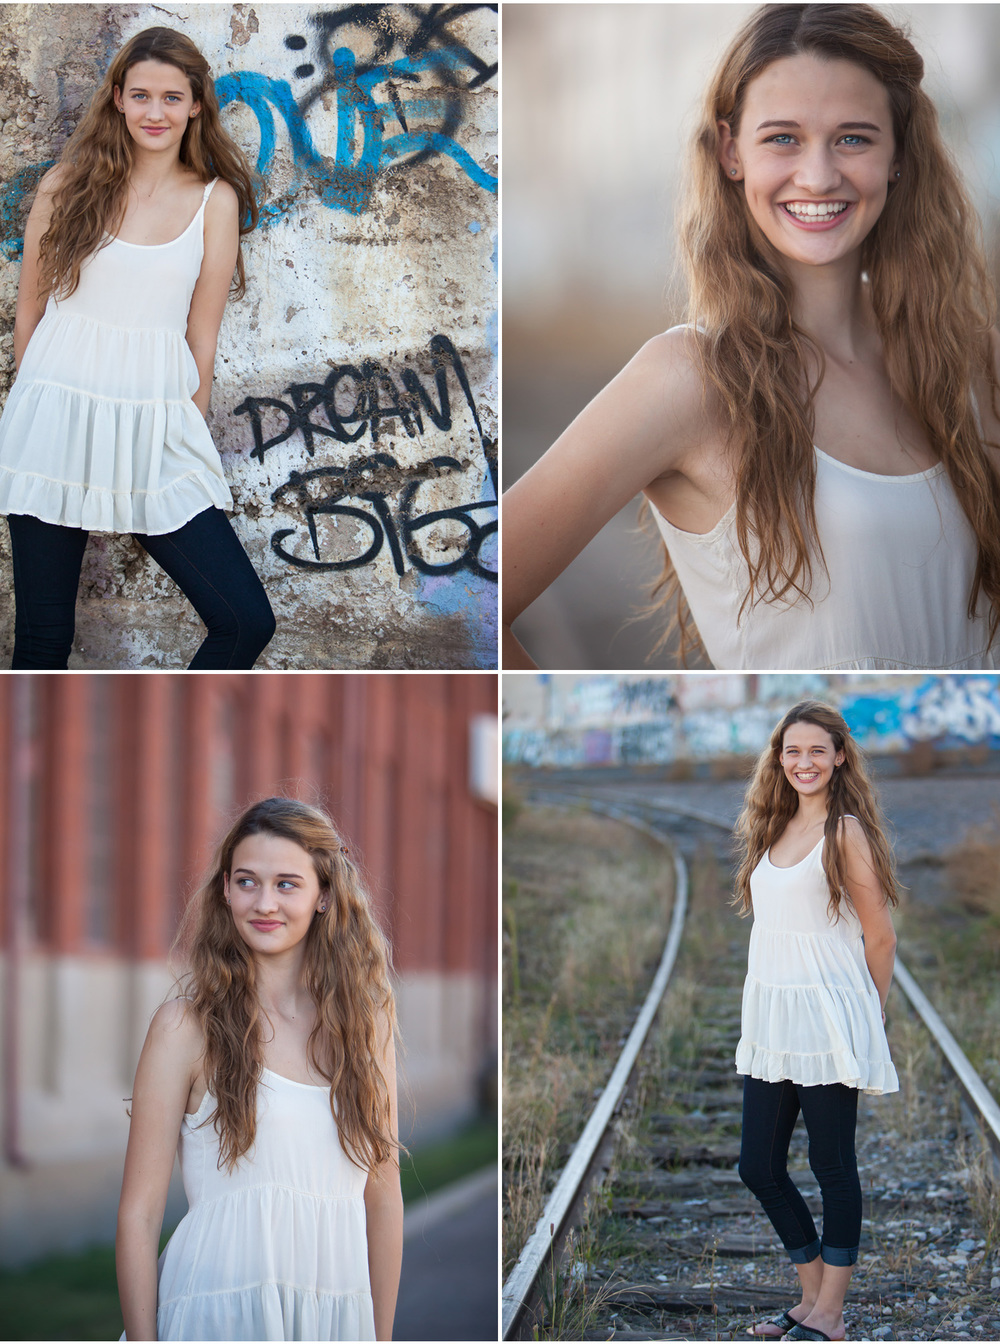 high school senior pictures in denver with historic factory, graffiti and traintracks | photographer jennifer koskinen | merritt portrait studio